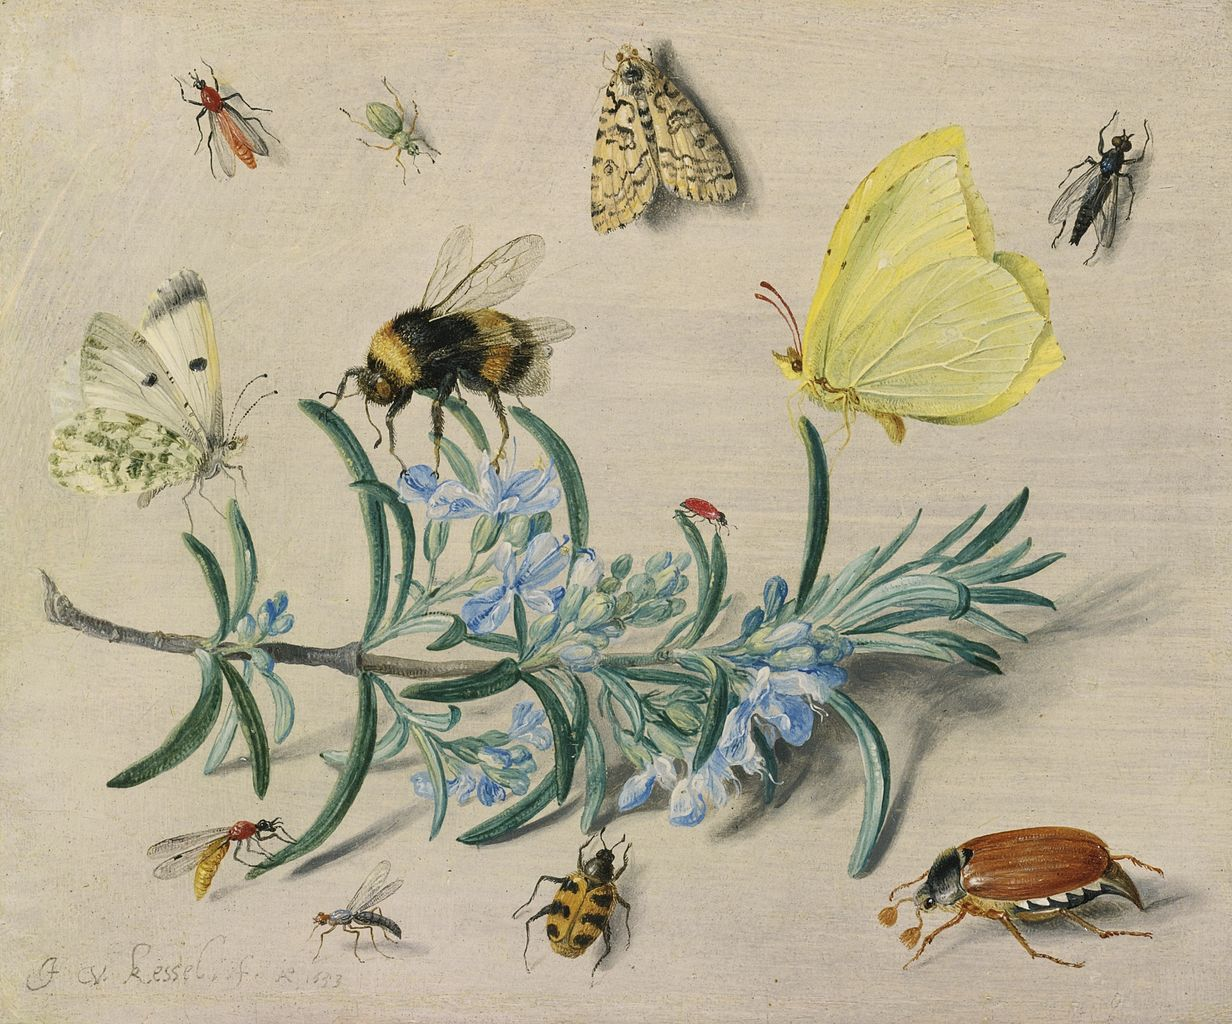 File:Jan van Kessel (I) - A still life study of insects on a sprig ...